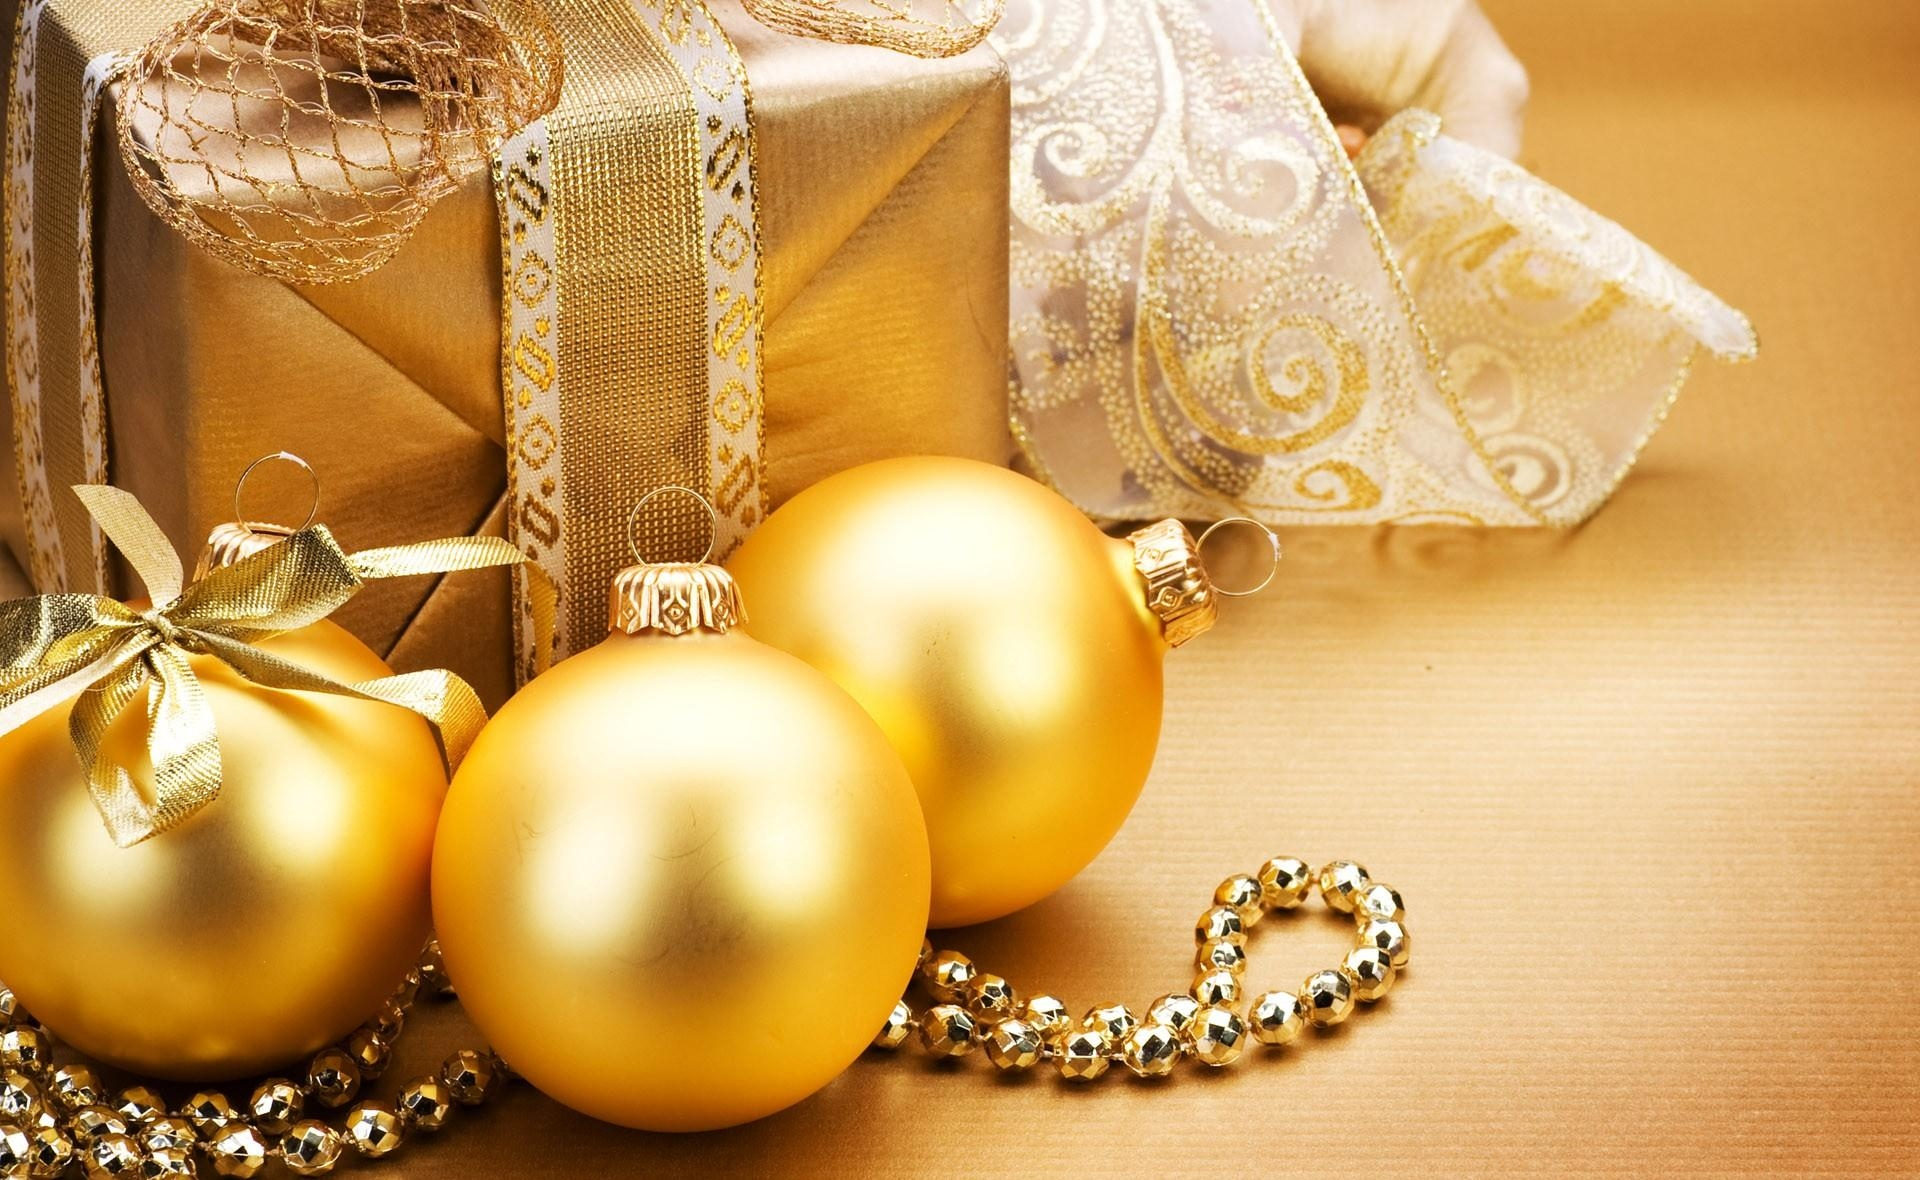 Christmas Decorations Golden Balls Gifts Ornaments Ribbon Gold Wishes Pic